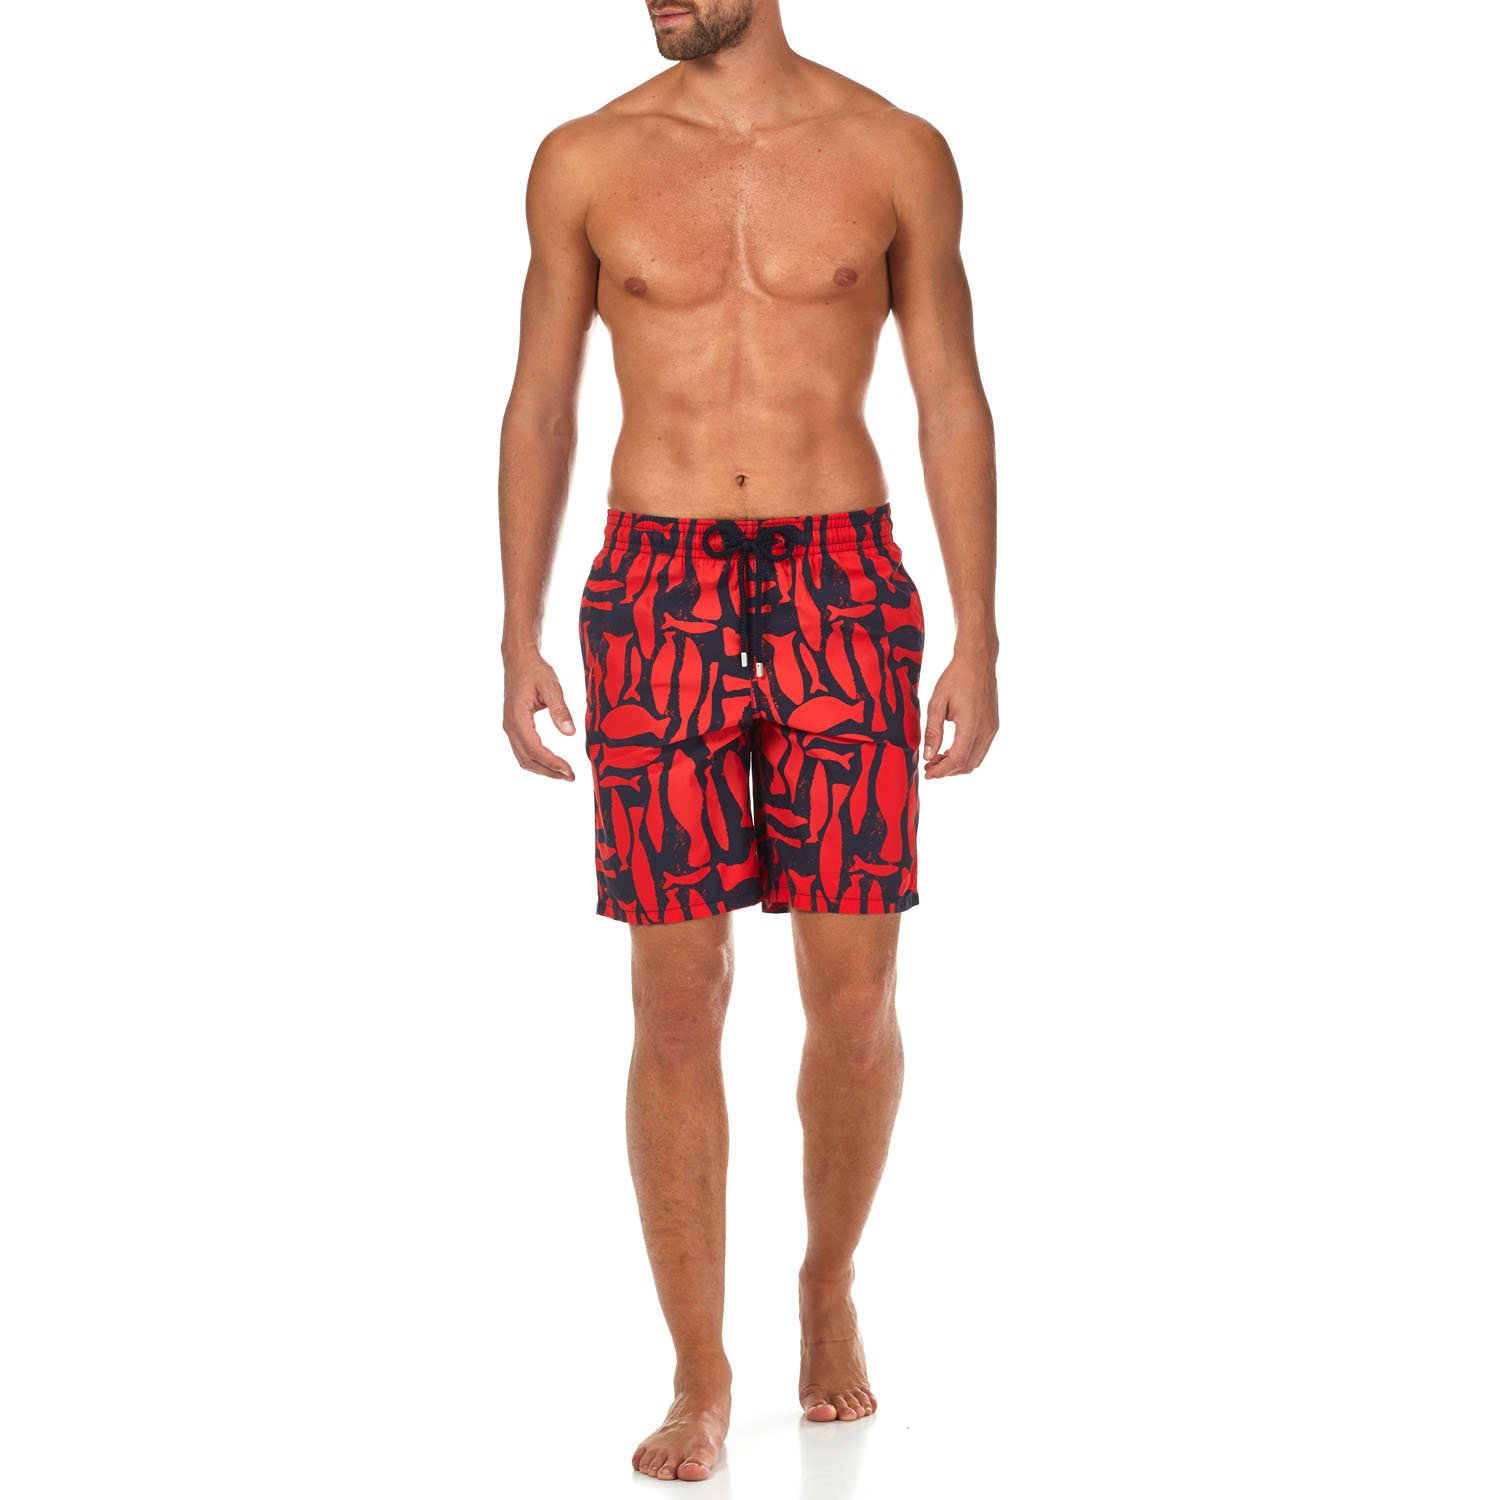 6eba68afb4 Vilebrequin - Silex Fishes Long Cut Swim Shorts - Men - Poppy red - L:  Amazon.co.uk: Clothing